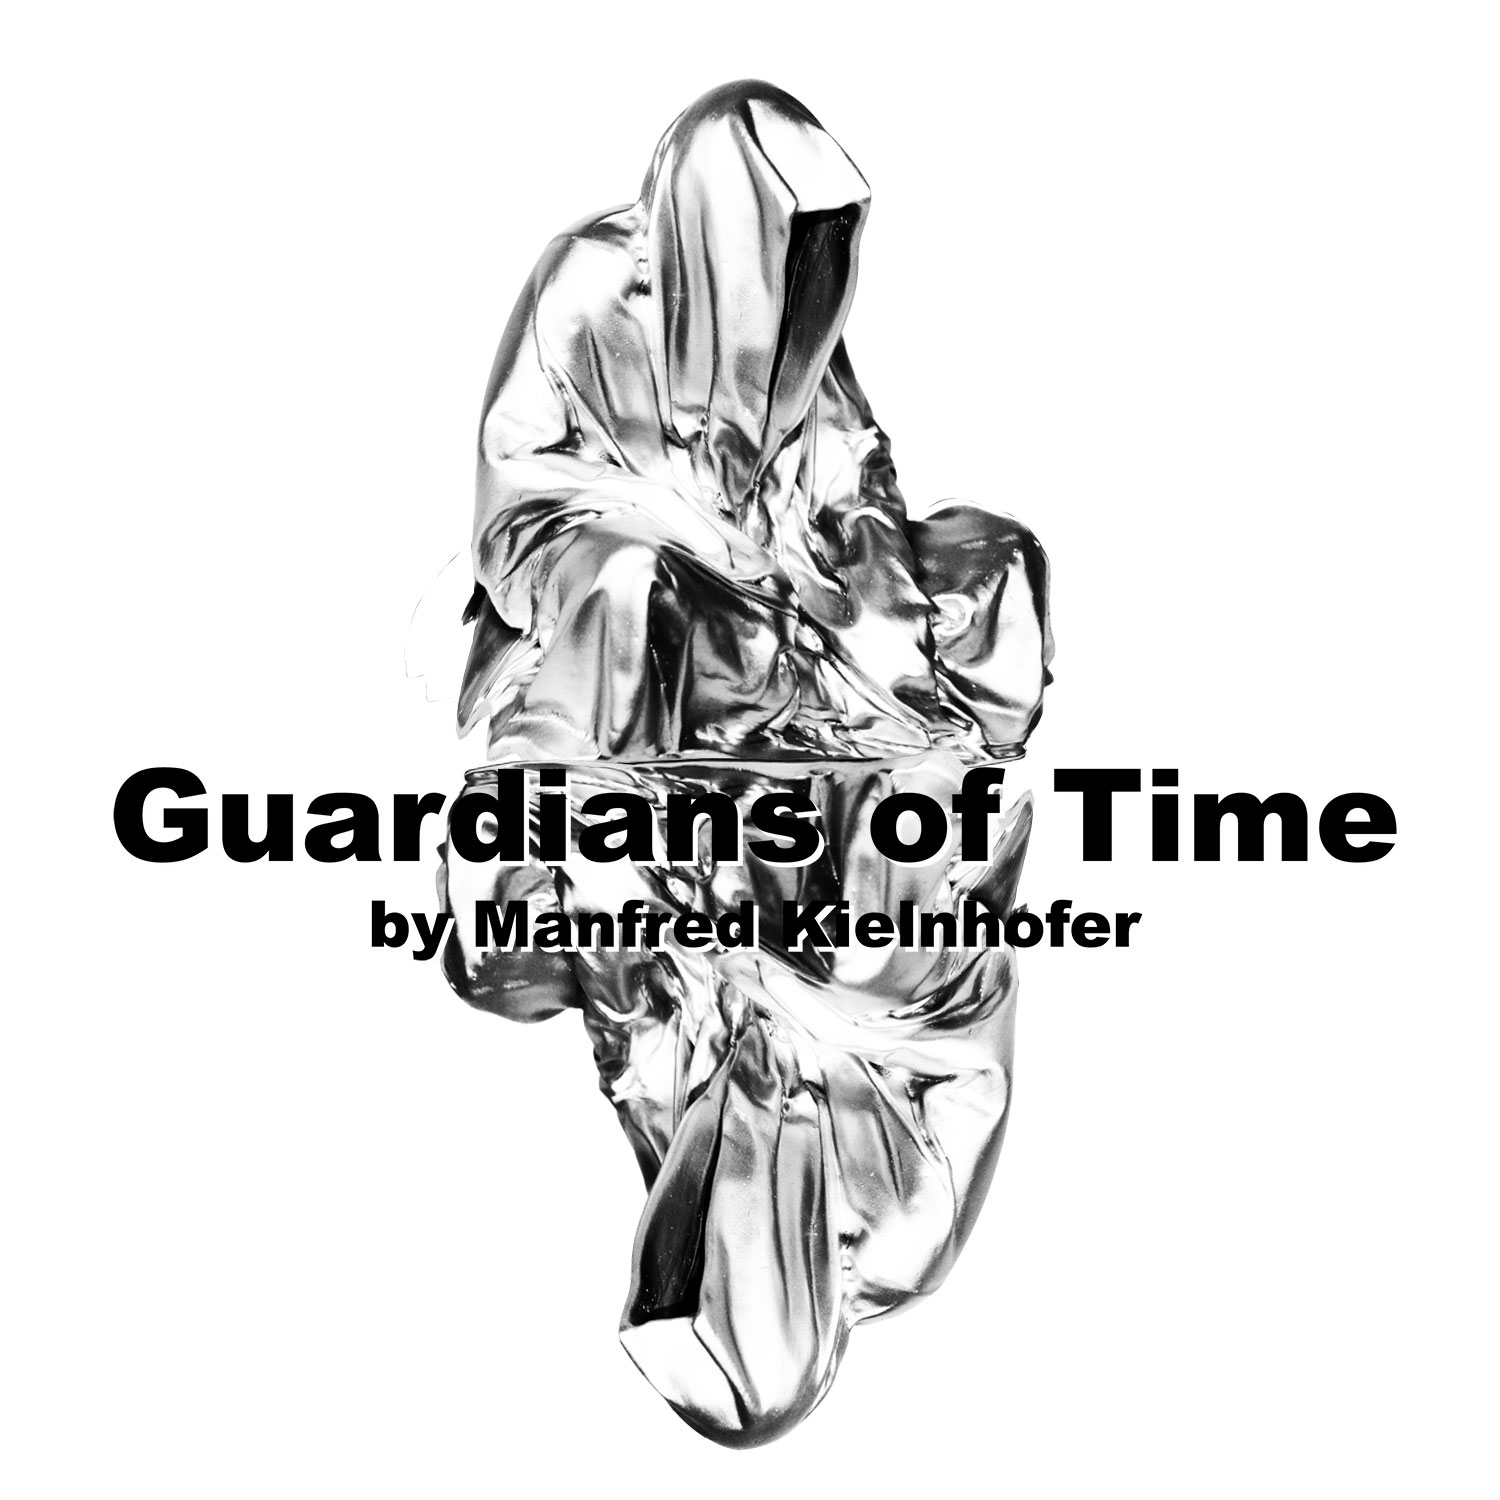 guardians-of-time-monumental-large-scale-statue-live-size-sculpture-contemporary-art-modern-design-arts-form-faceless-art-ghost-in-a-coat-1117